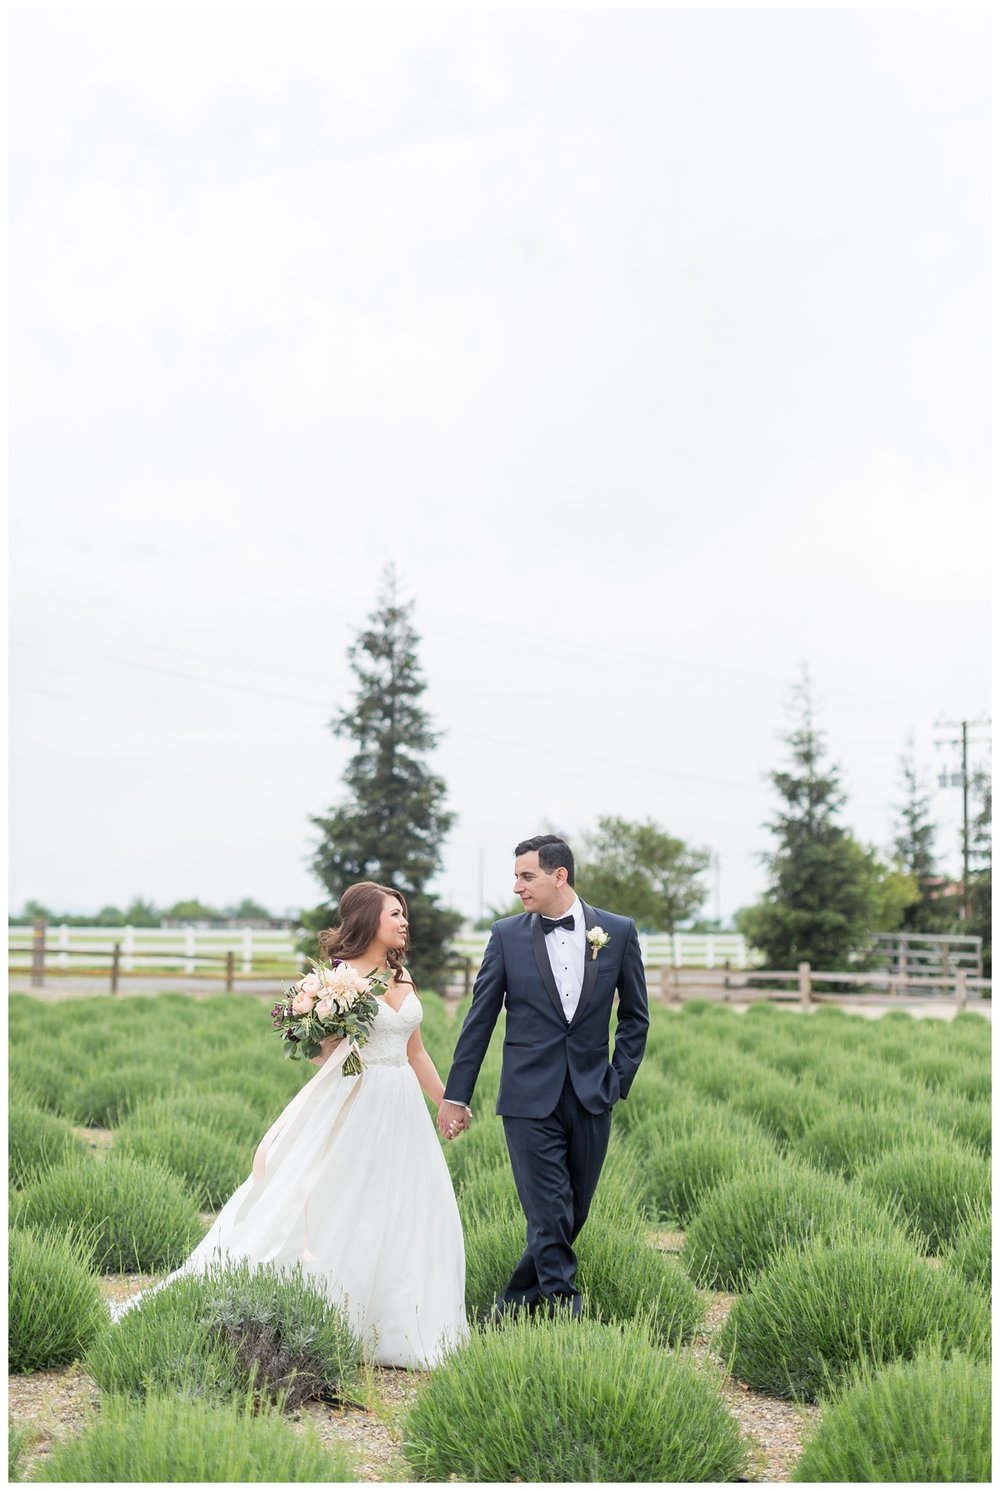 Pageo-Lavender-Farms-Wedding-Photos_4716.jpg